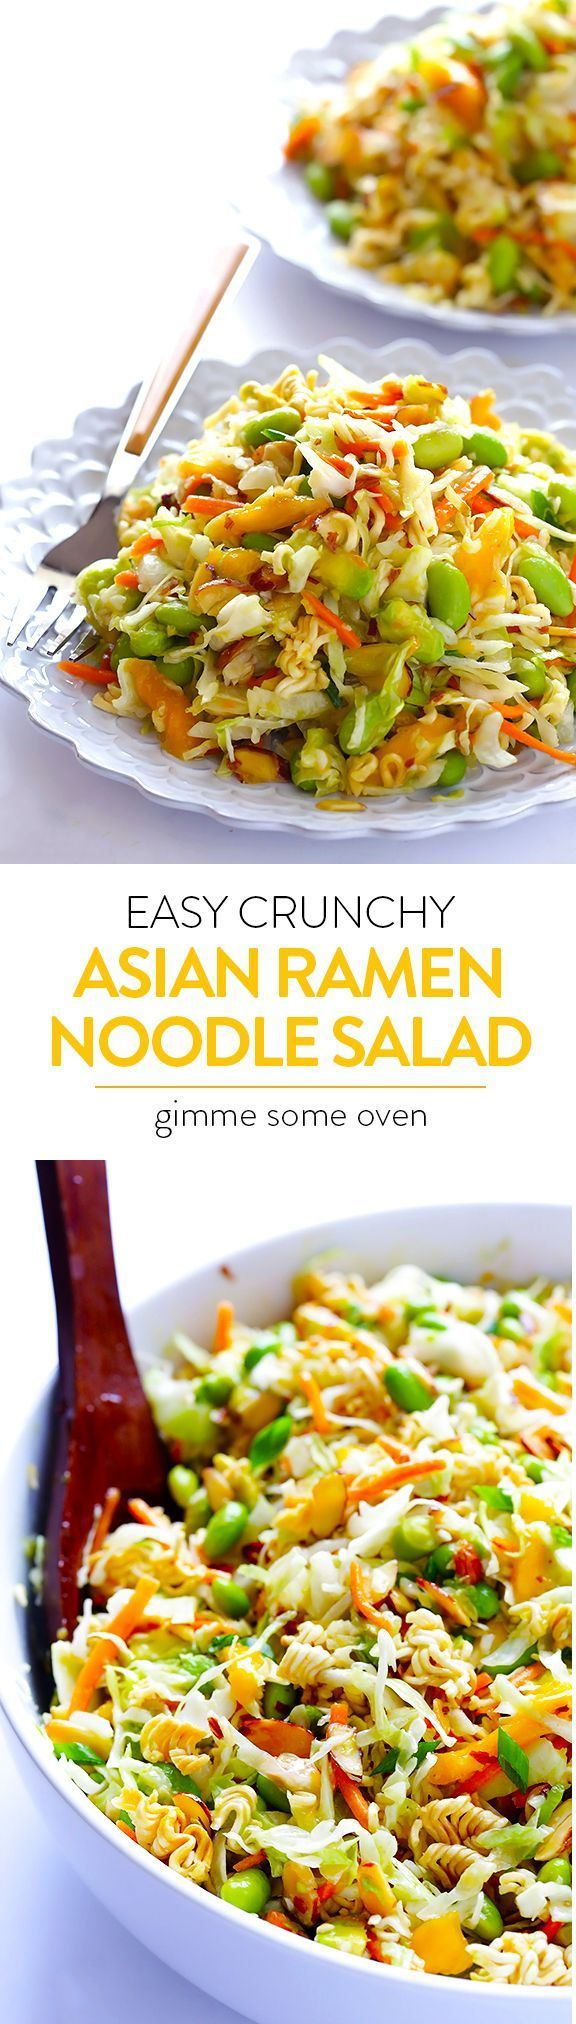 Crunchy Asian Ramen Noodle Salad -- quick and easy to make, lightened up from the original, and always a crowd favorite!   gimmesomeoven.com